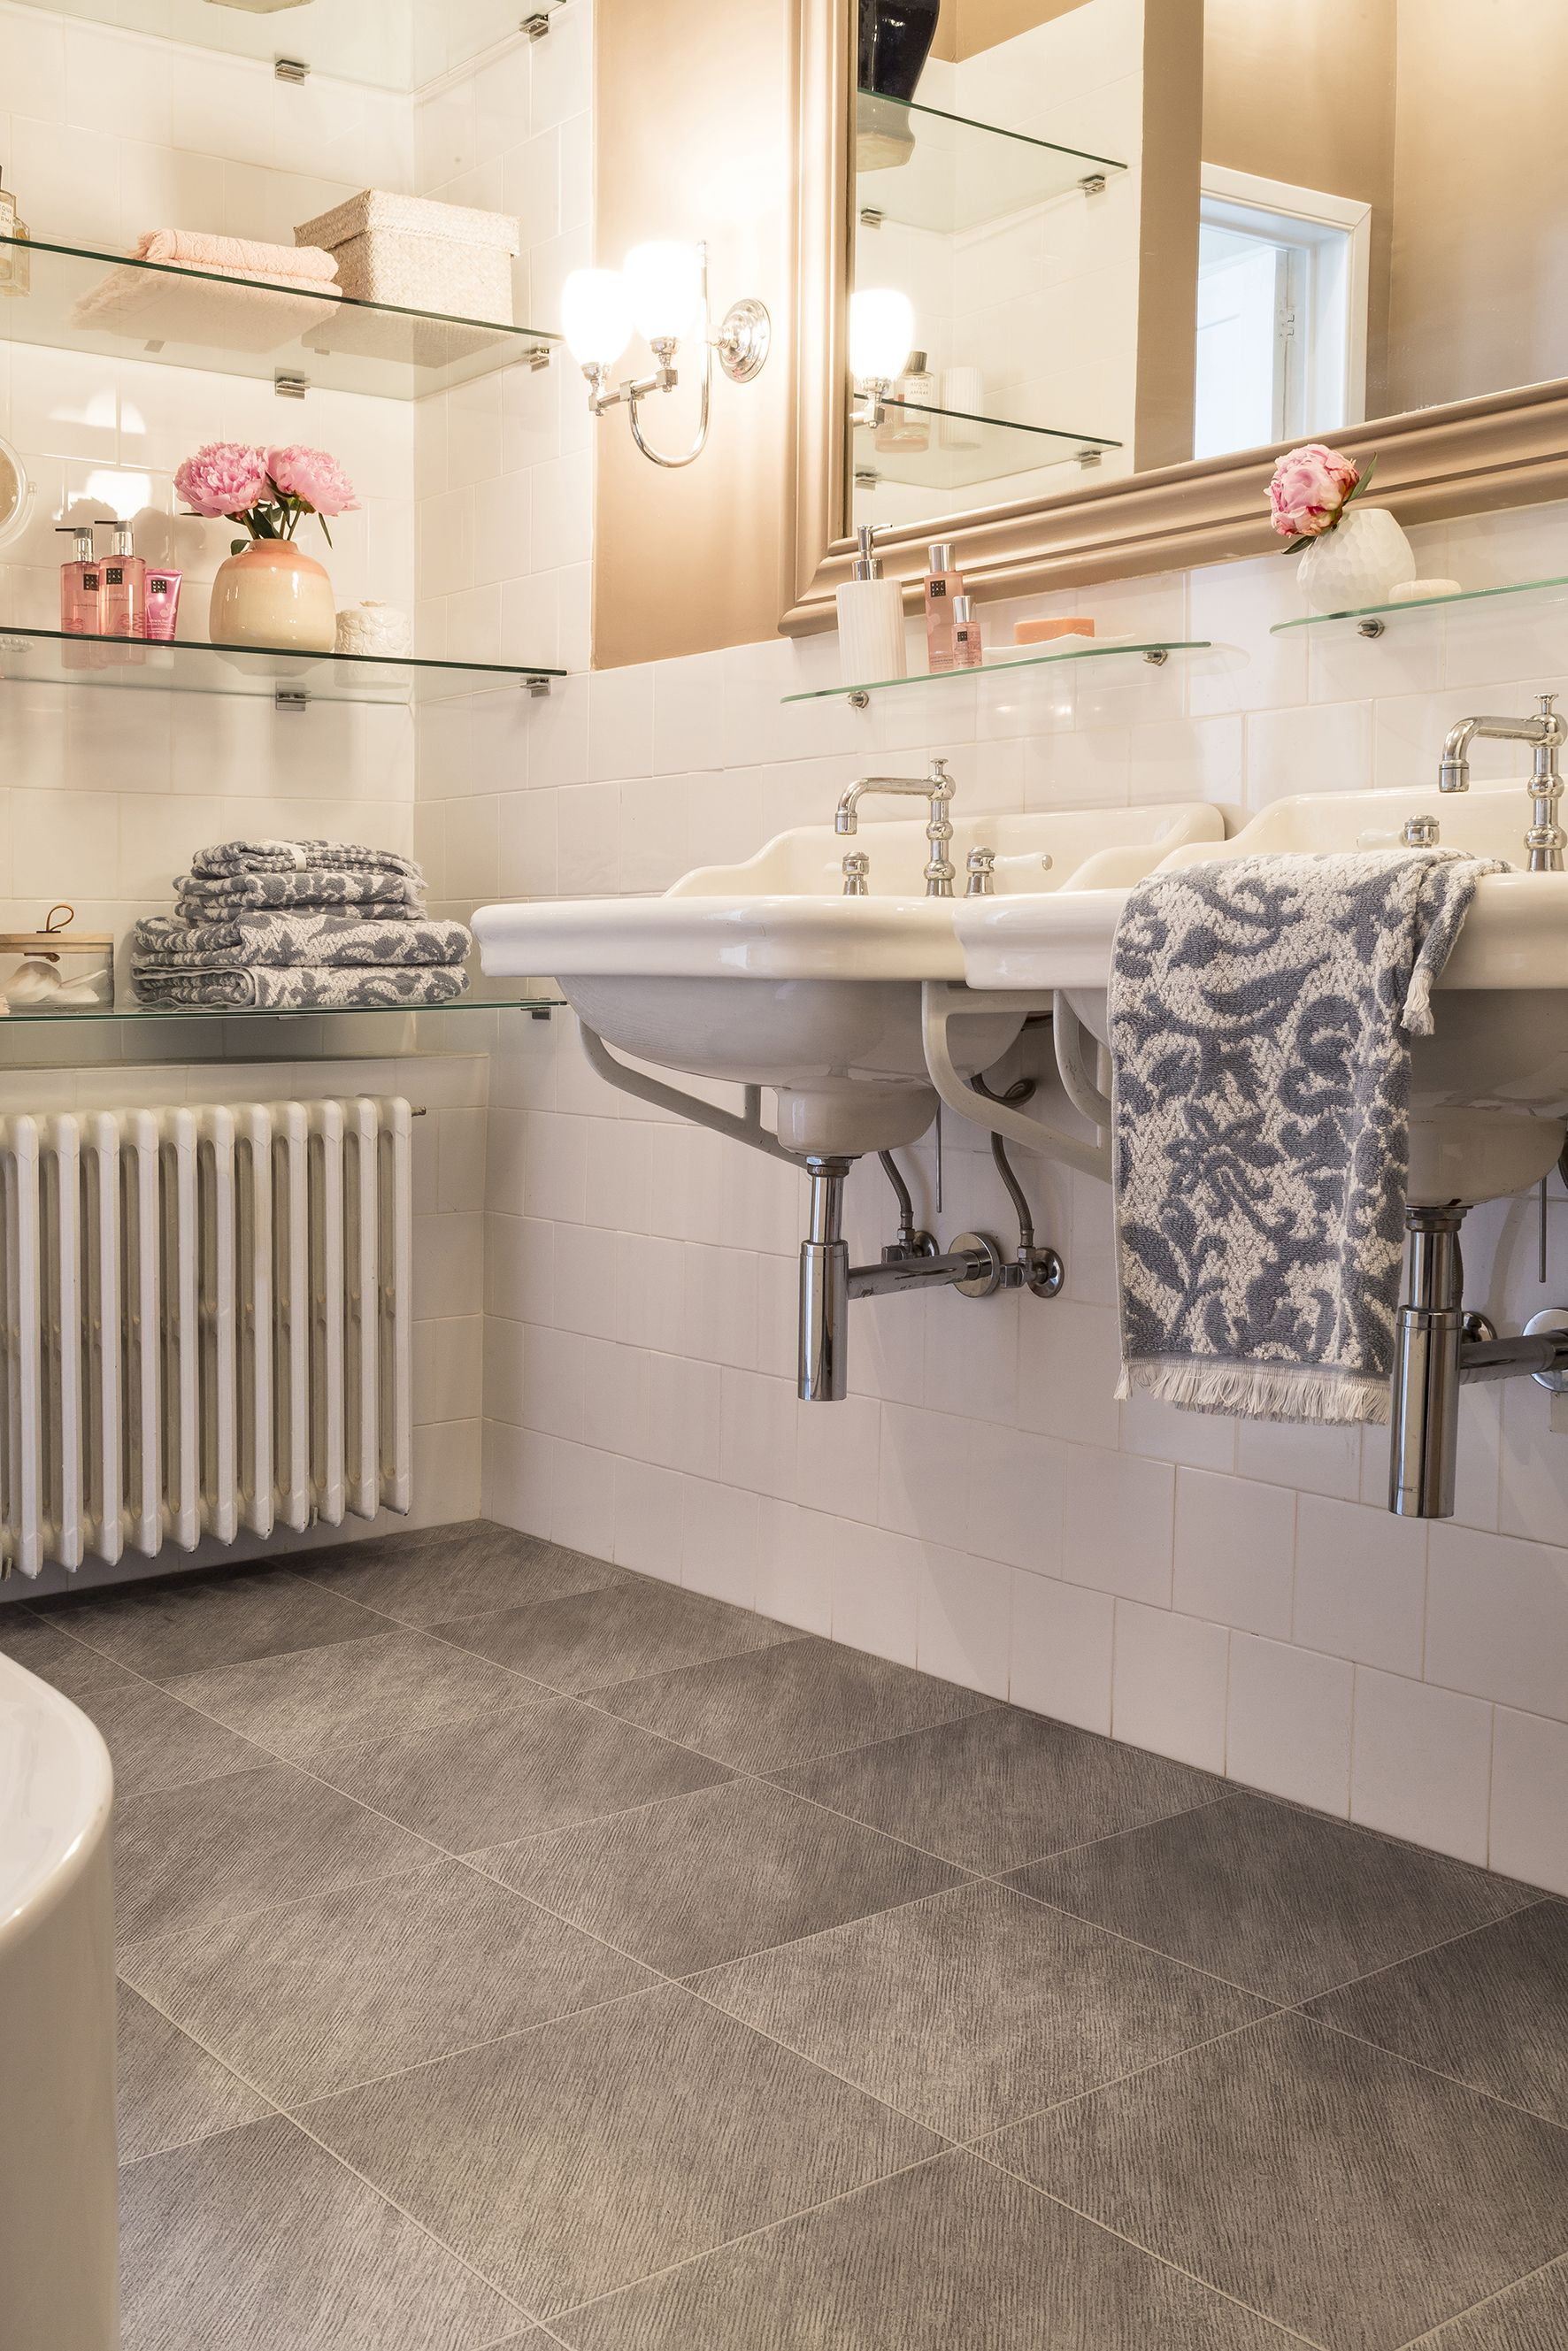 Bathroom Beauty With Our Quartz Tiled Design Non Slip Warmth And